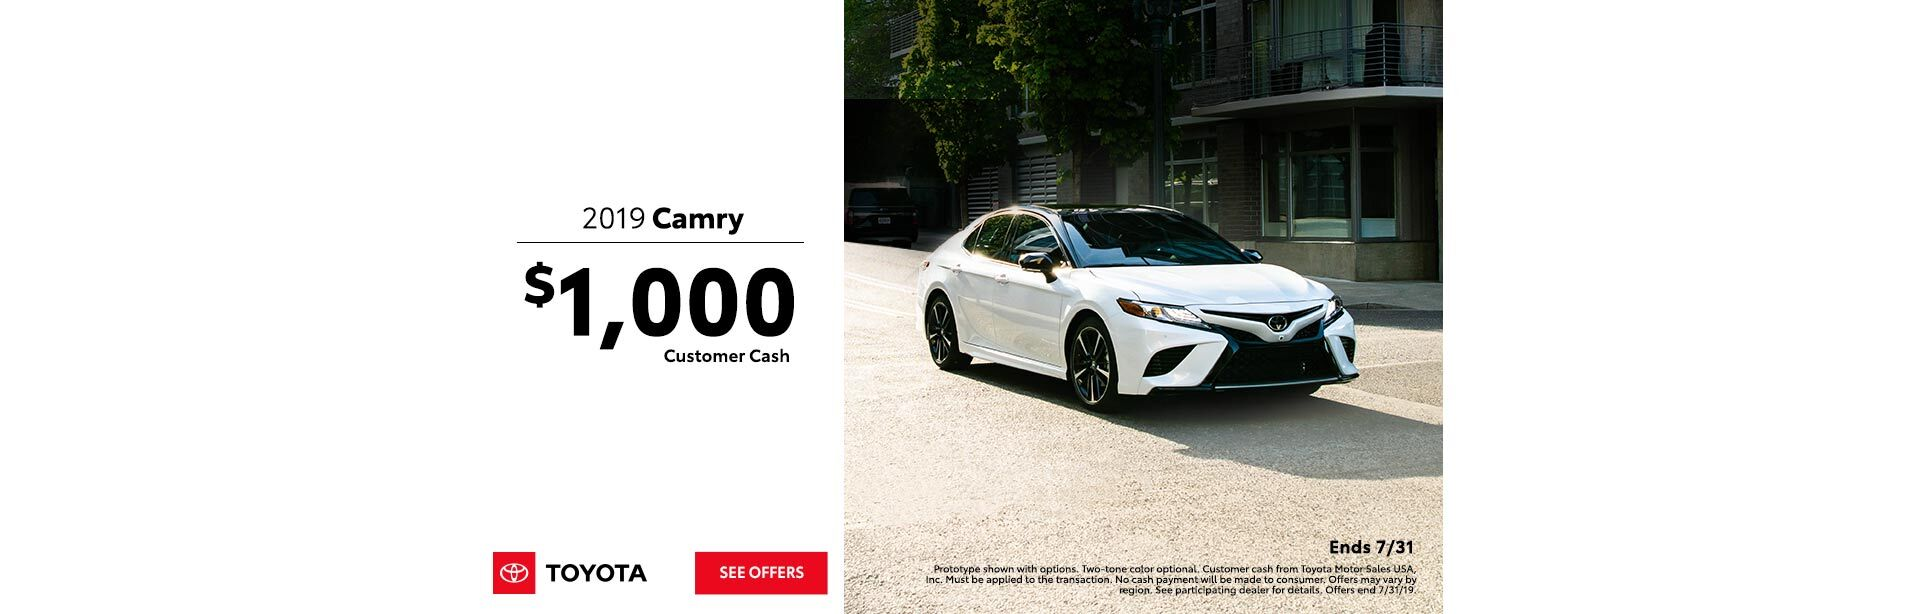 Camry Offer